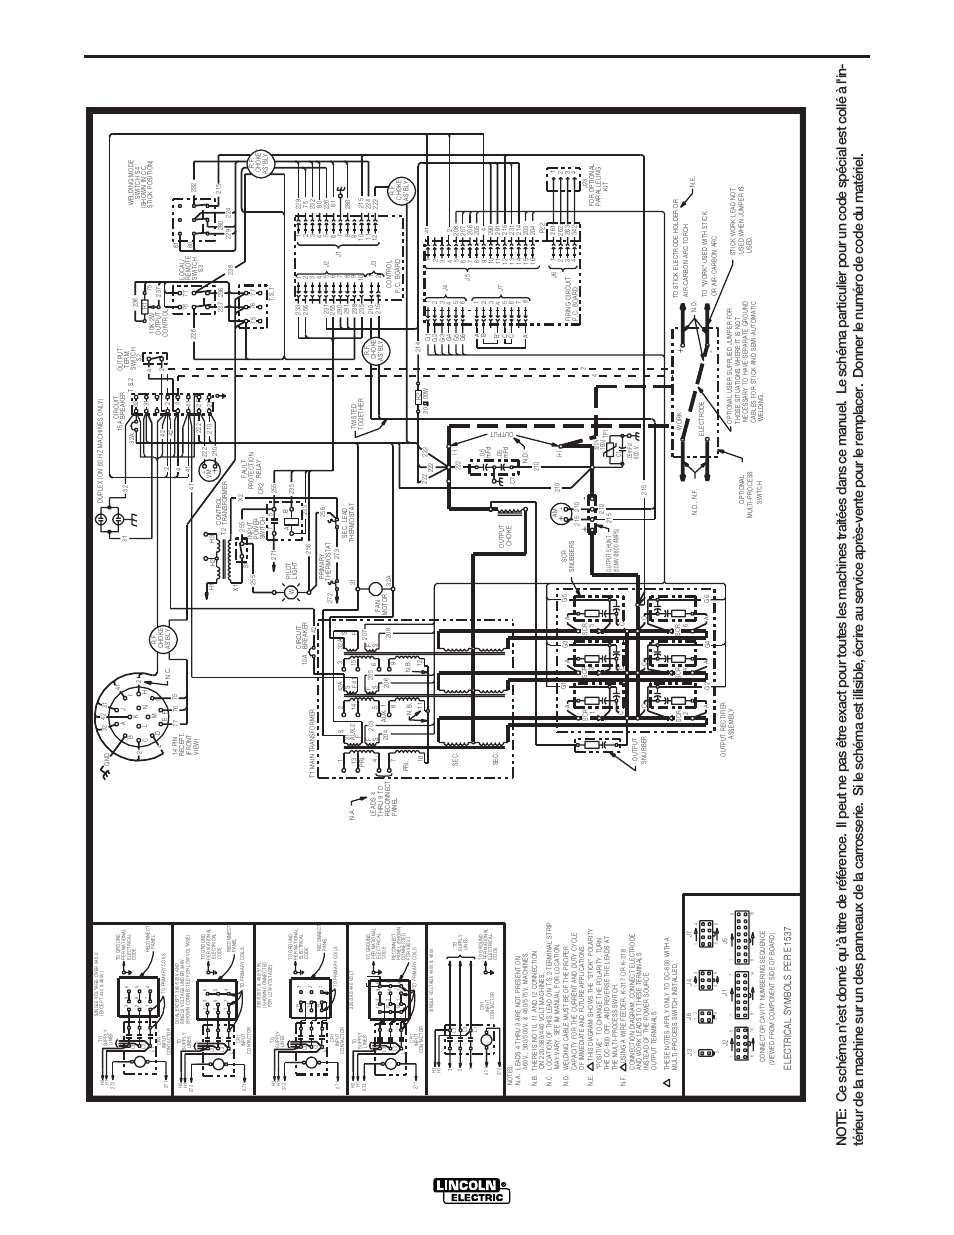 lincoln stick welder wiring diagram  lincoln  auto wiring diagram